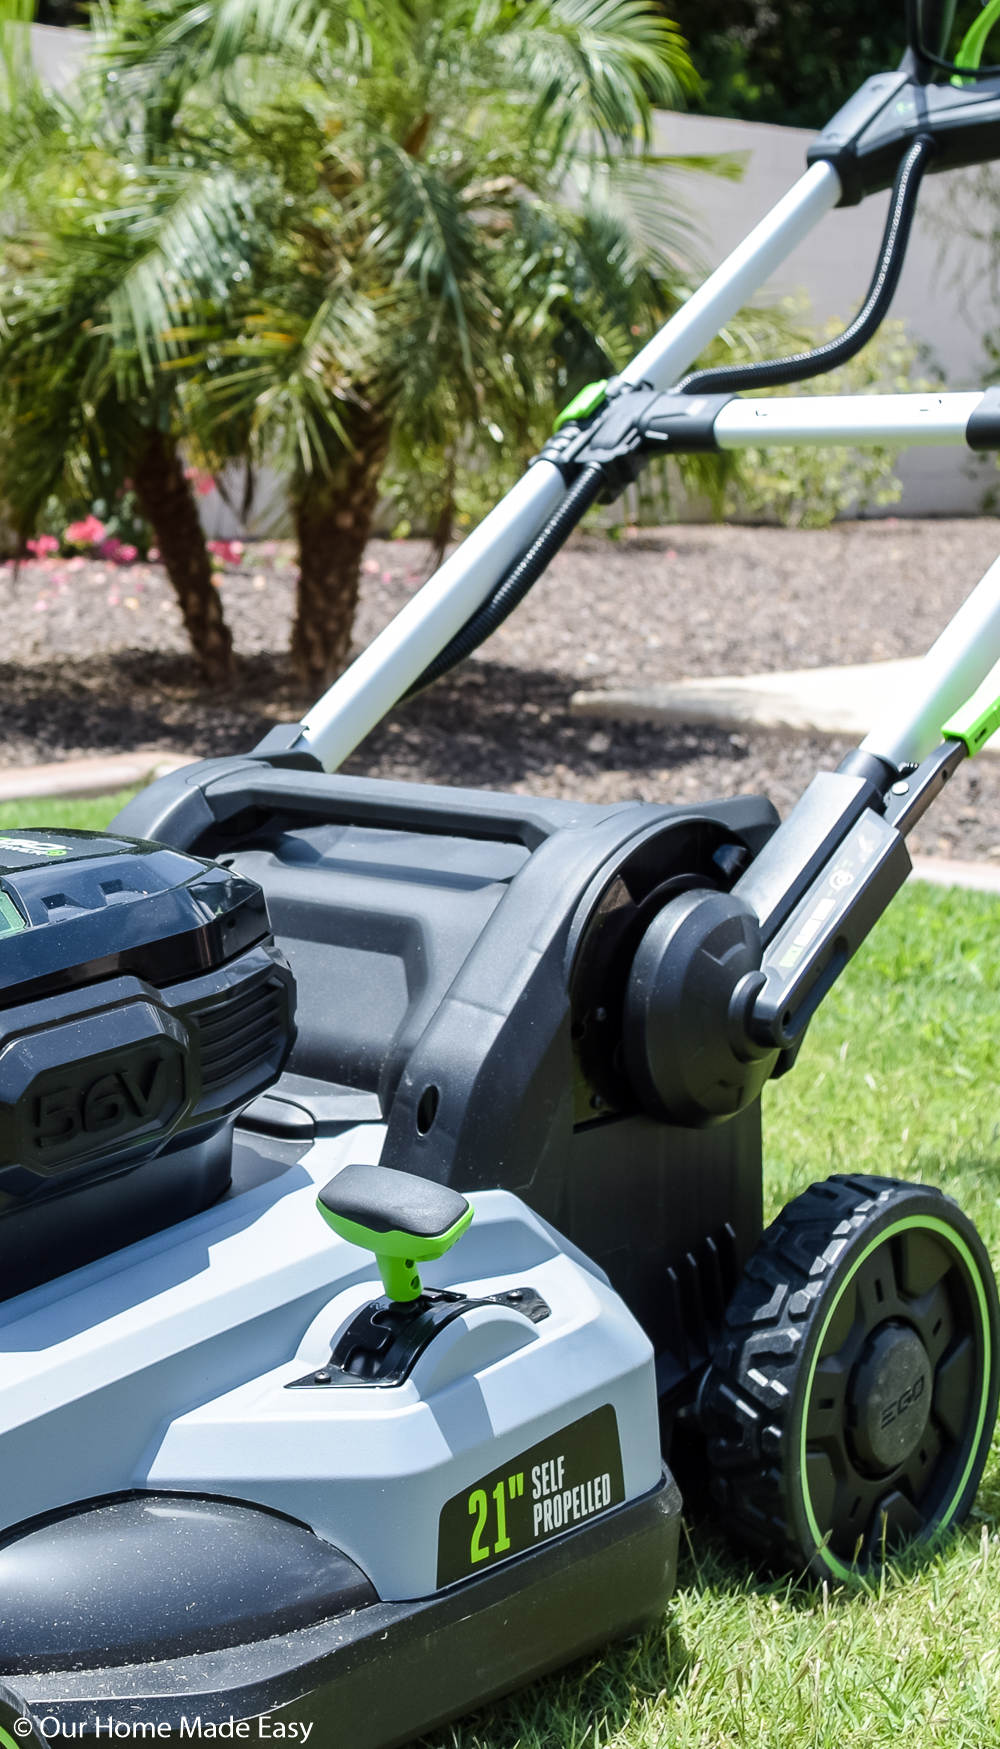 Our EGO lawnmower is a battery powered lawnmower that keeps our lawn looking fresh and maintained